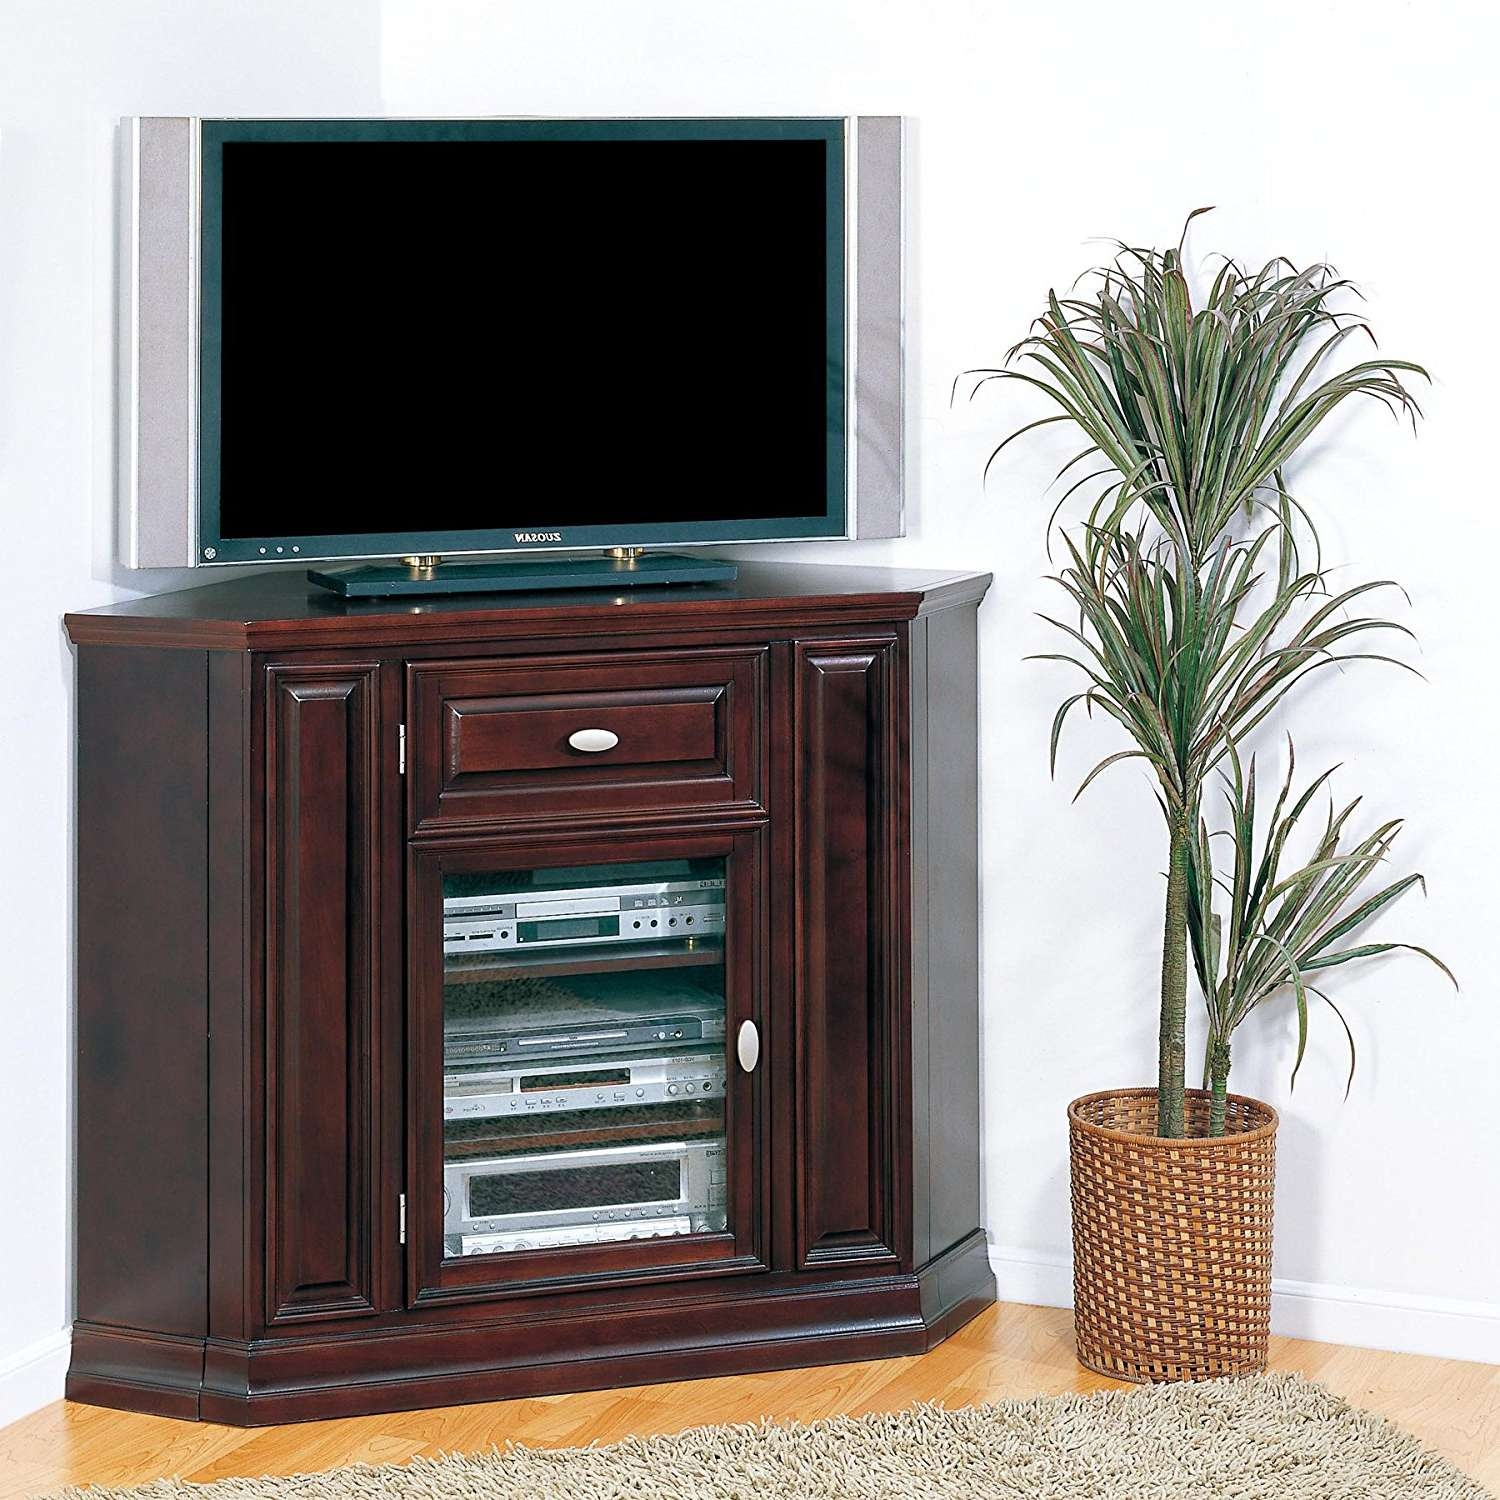 Tv Stand : Literarywondrous Tv Stand Corner Photos Inspirations In Tall Tv Cabinets Corner Unit (View 2 of 20)